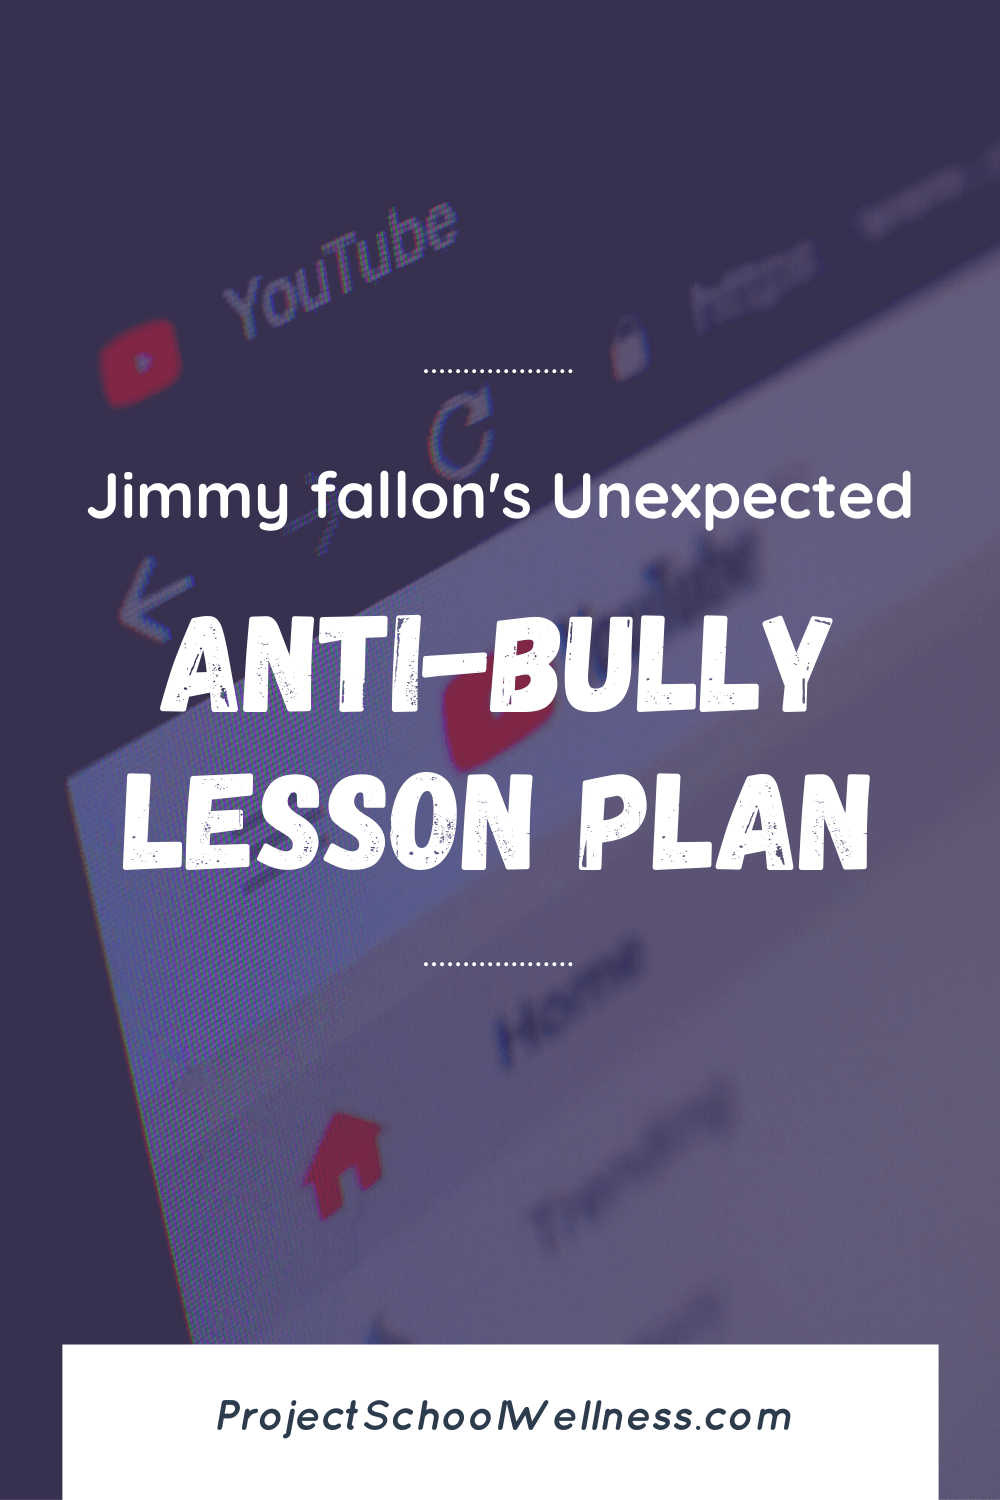 Jimmy Fallon's Unexpected Anti-Bully Lesson Plan - A quick and easy lesson on bullying and building an anti-bully school culture